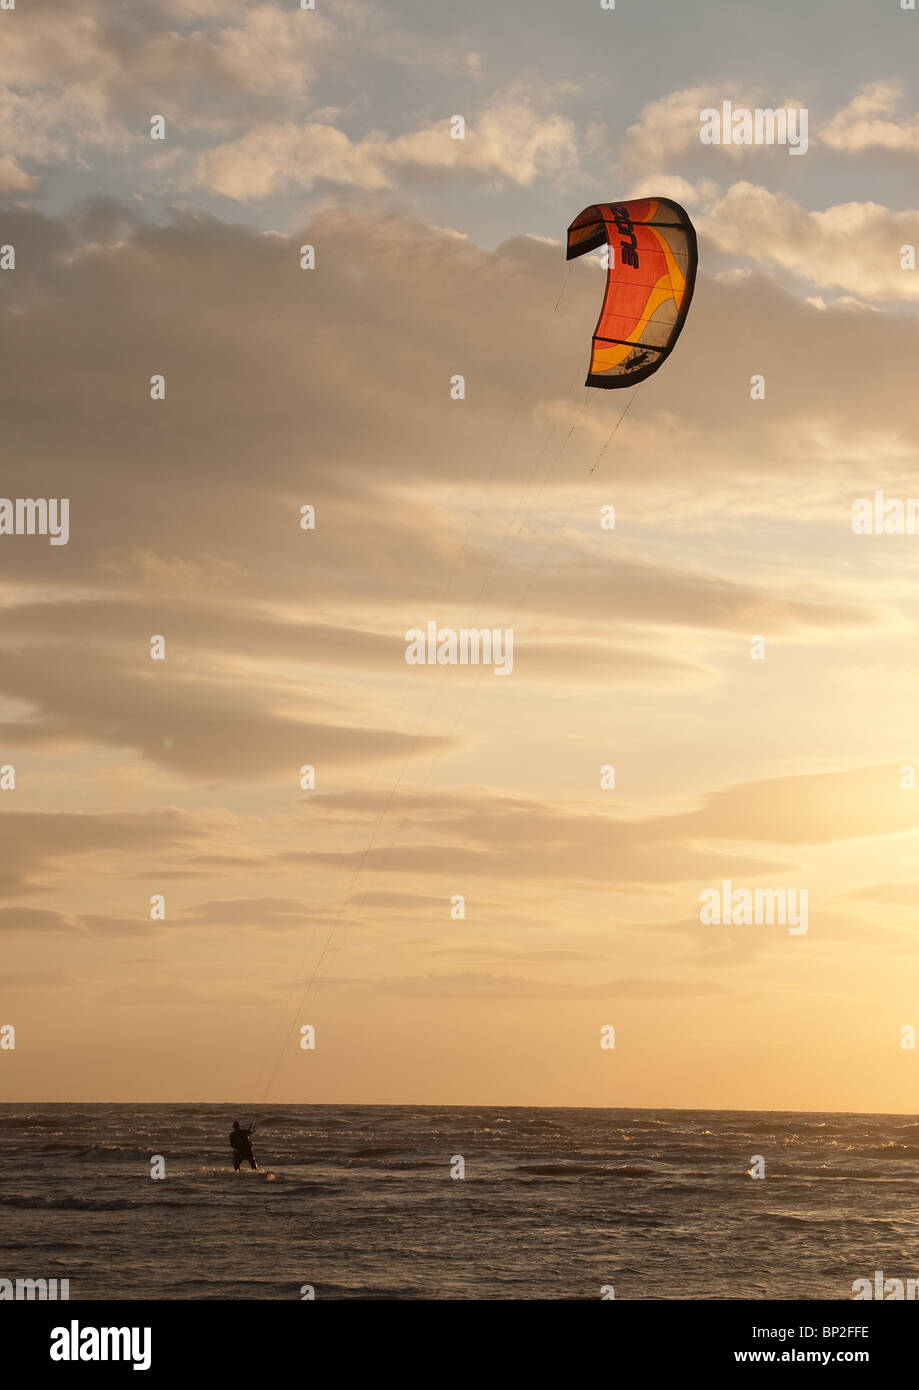 Wind surfing off Southport - Stock Image